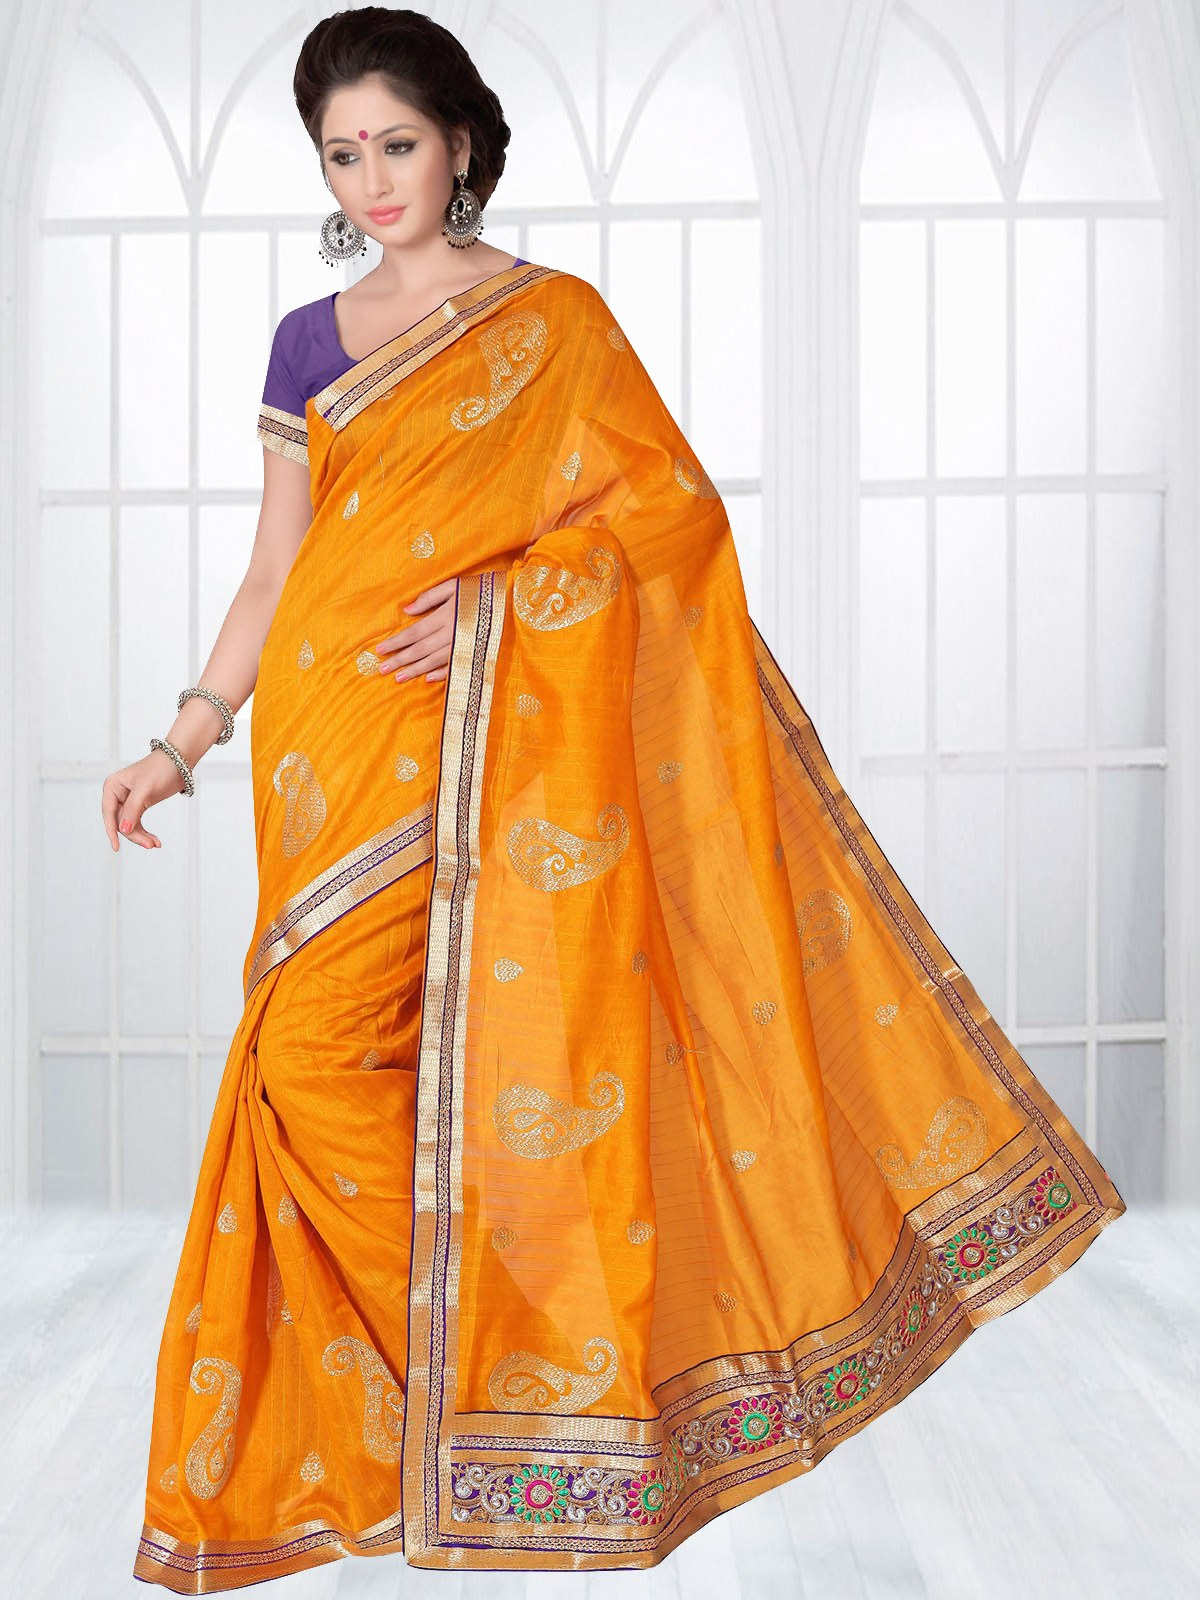 Suchi Fashion Yellow With Golden Embroidery And Border